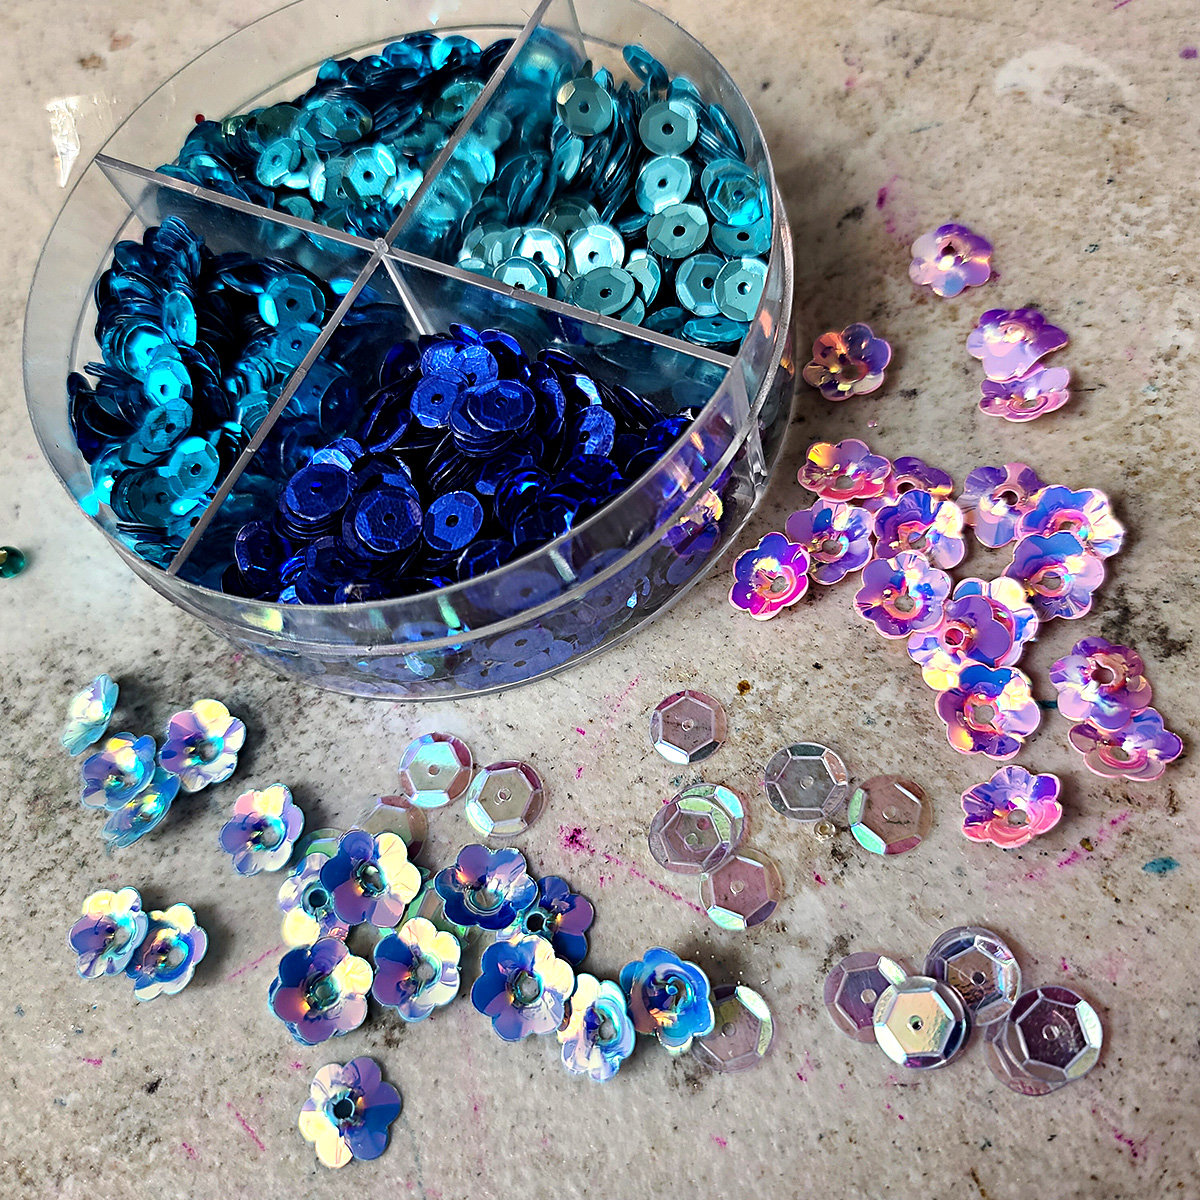 A clear tin of blue sequins is shown sitting behind piles of light pink and blue sequins.